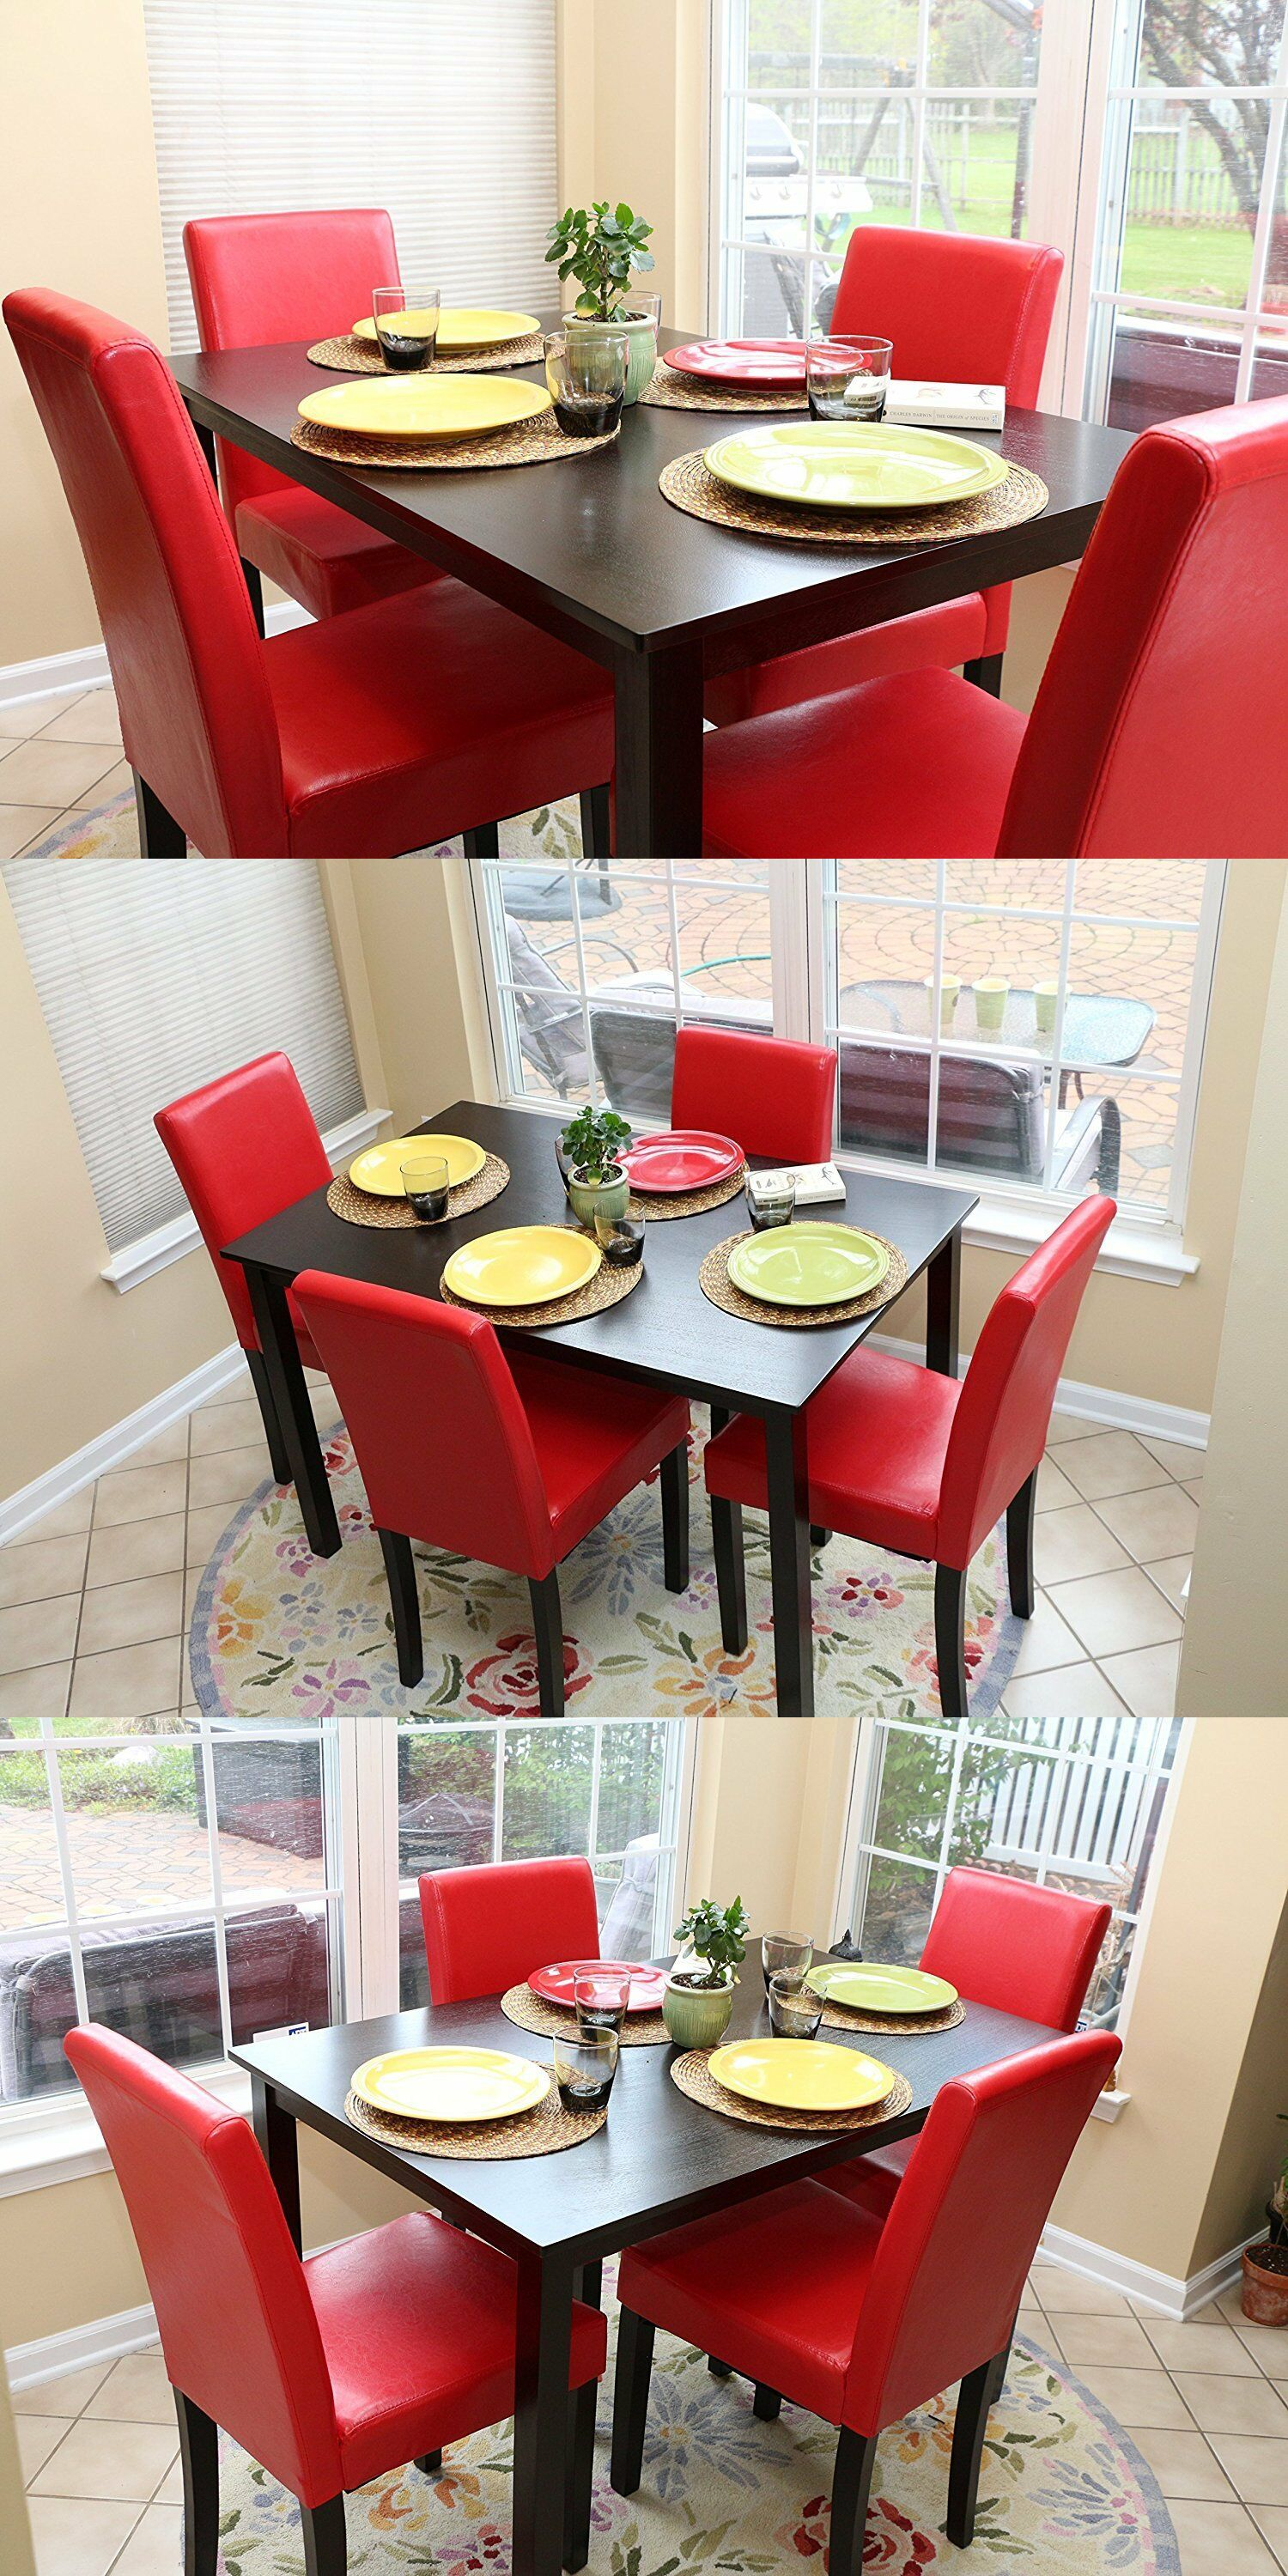 Dining Sets 107578 5 Pc Red Leather 4 Person Table And Chairs Red Dining Dinette Buy It Now Only 250 On Eb Table And Chairs Formal Dining Tables Dinette